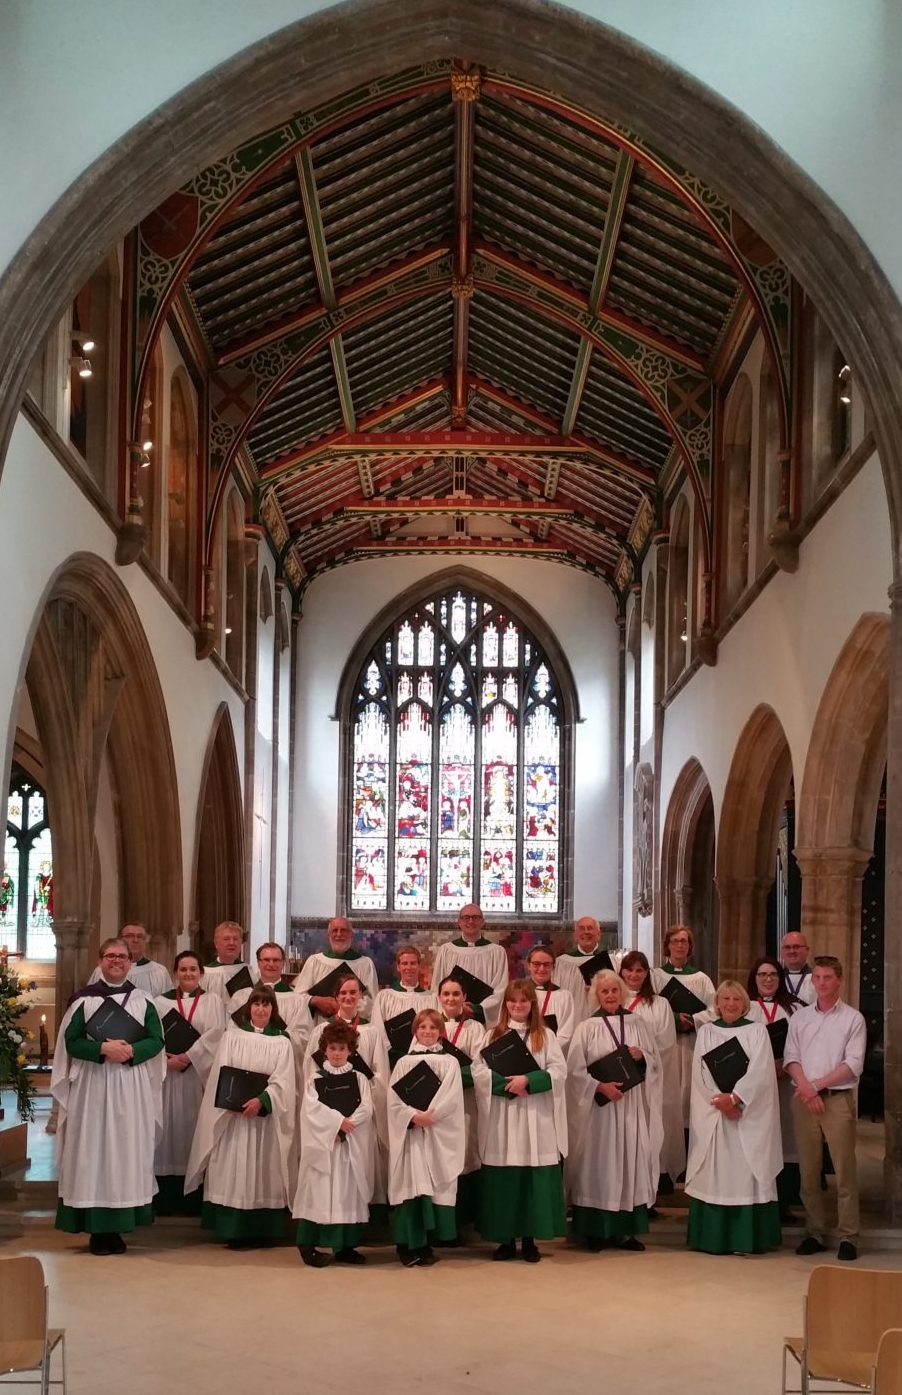 St Stephen's Choir in Chelmsford Cathedral